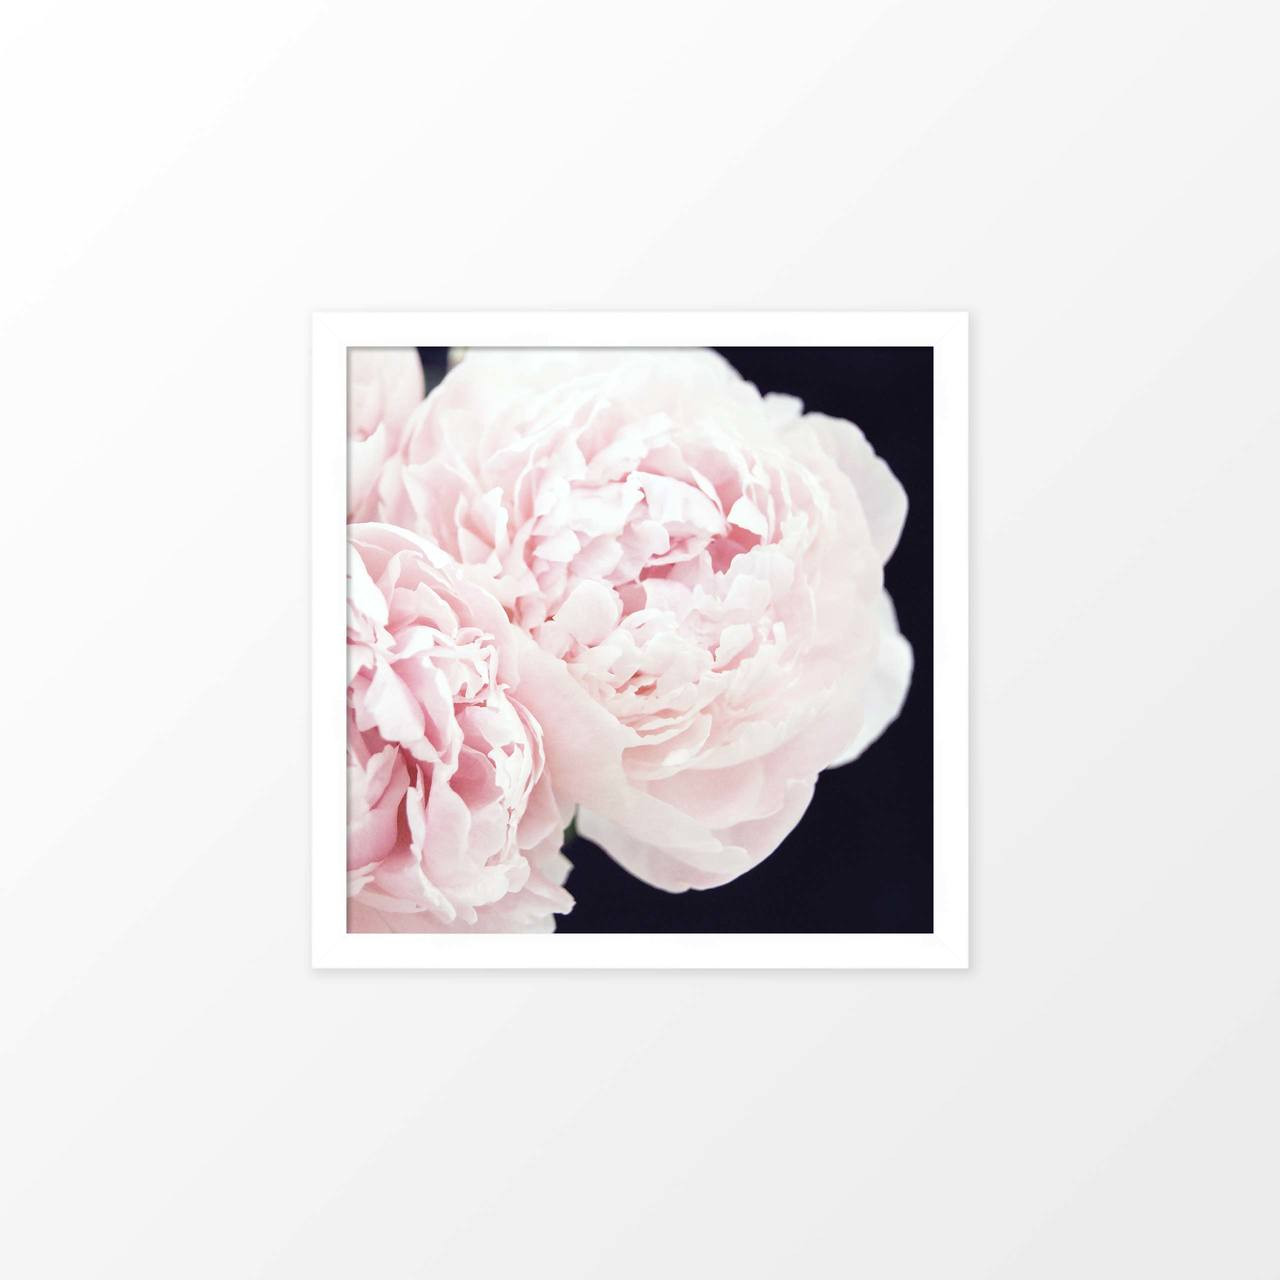 'Peonies III' flower photography poster from The Printed Home